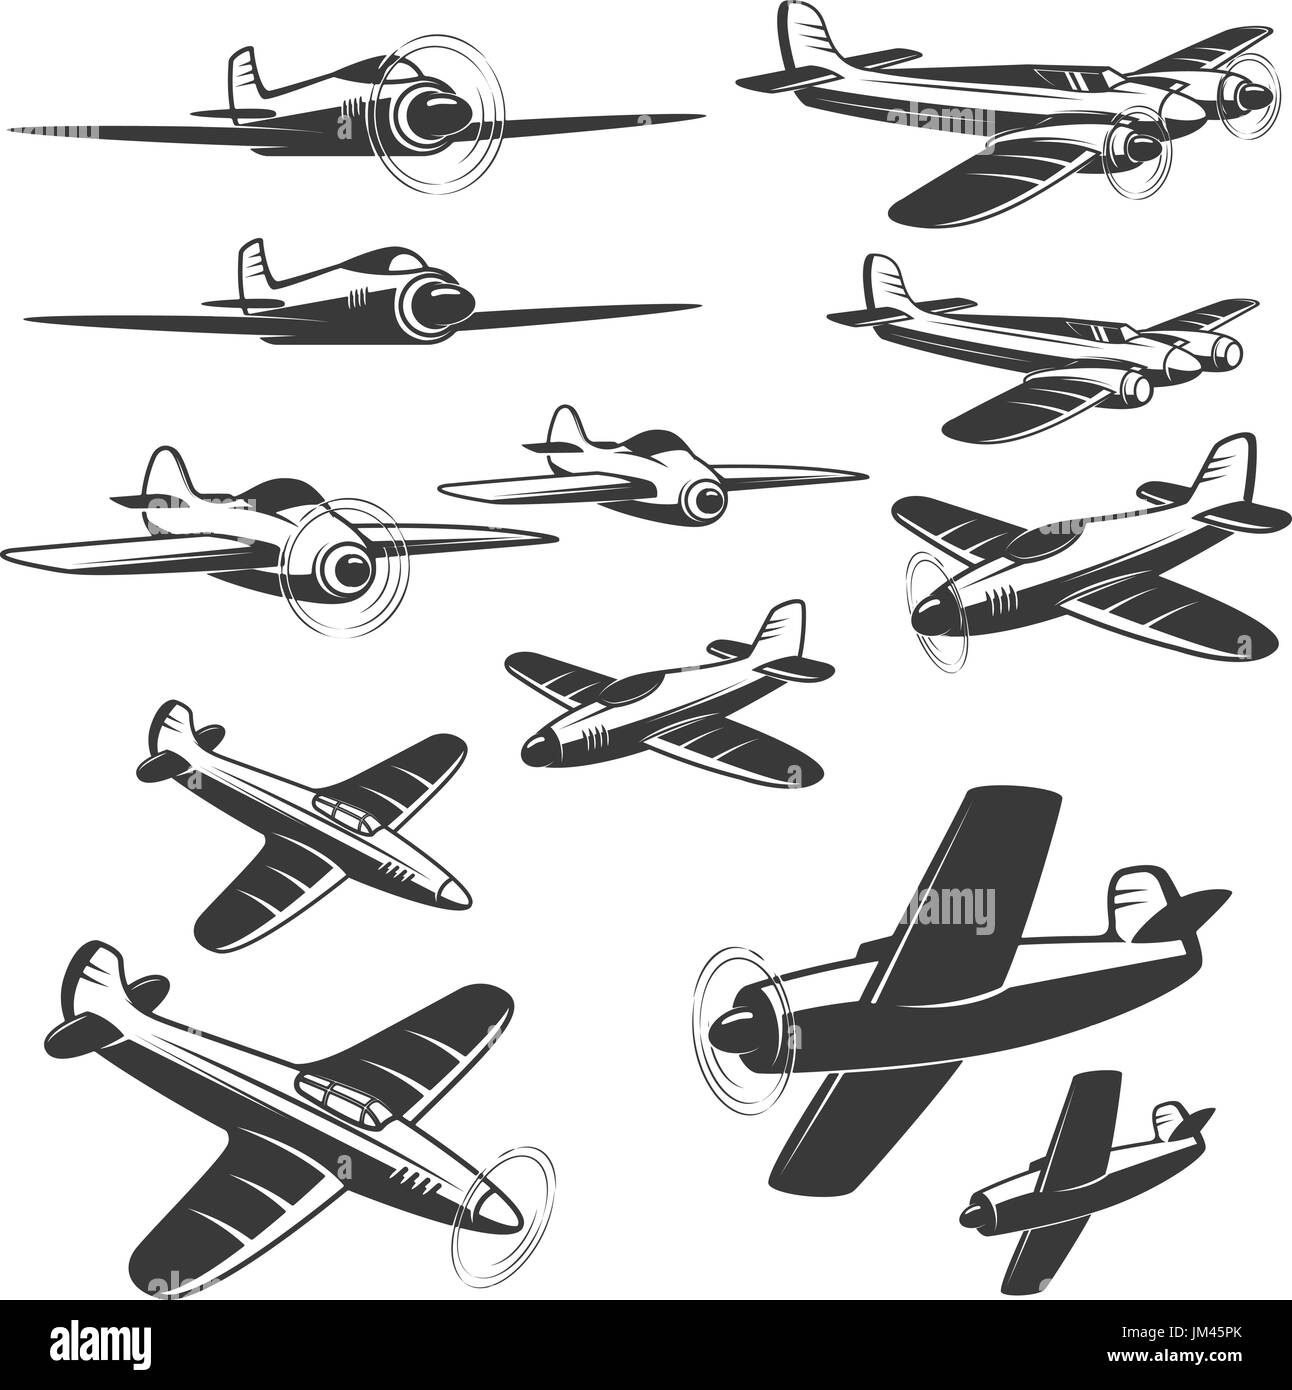 set of aircraft icons isolated on white background. Design elements for logo, emblem, sign. Vector illustration. - Stock Image